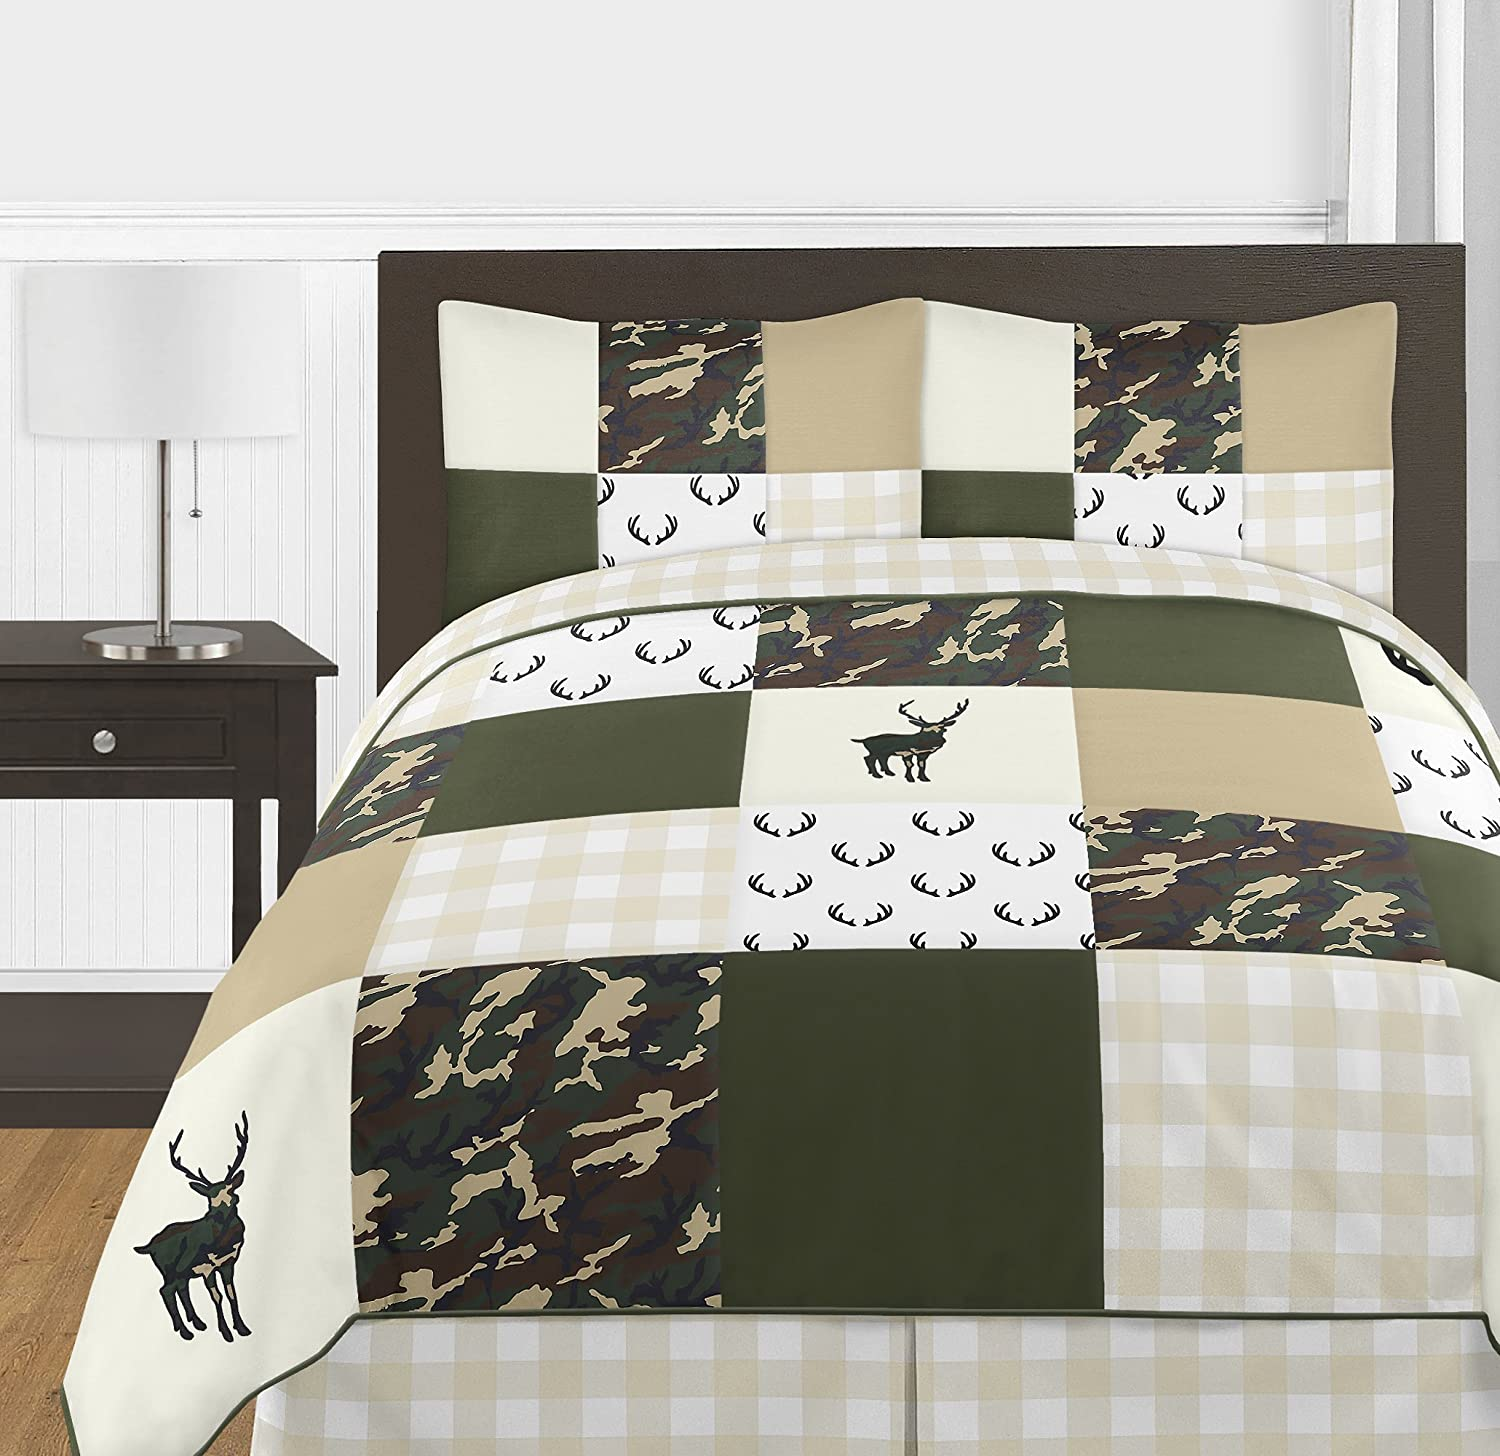 5 Pieces Comforter Sham and Sheets Rustic Camouflage Sweet Jojo Designs Green and Beige Deer Buffalo Plaid Check Woodland Camo Boy Toddler Kid Childrens Bedding Set